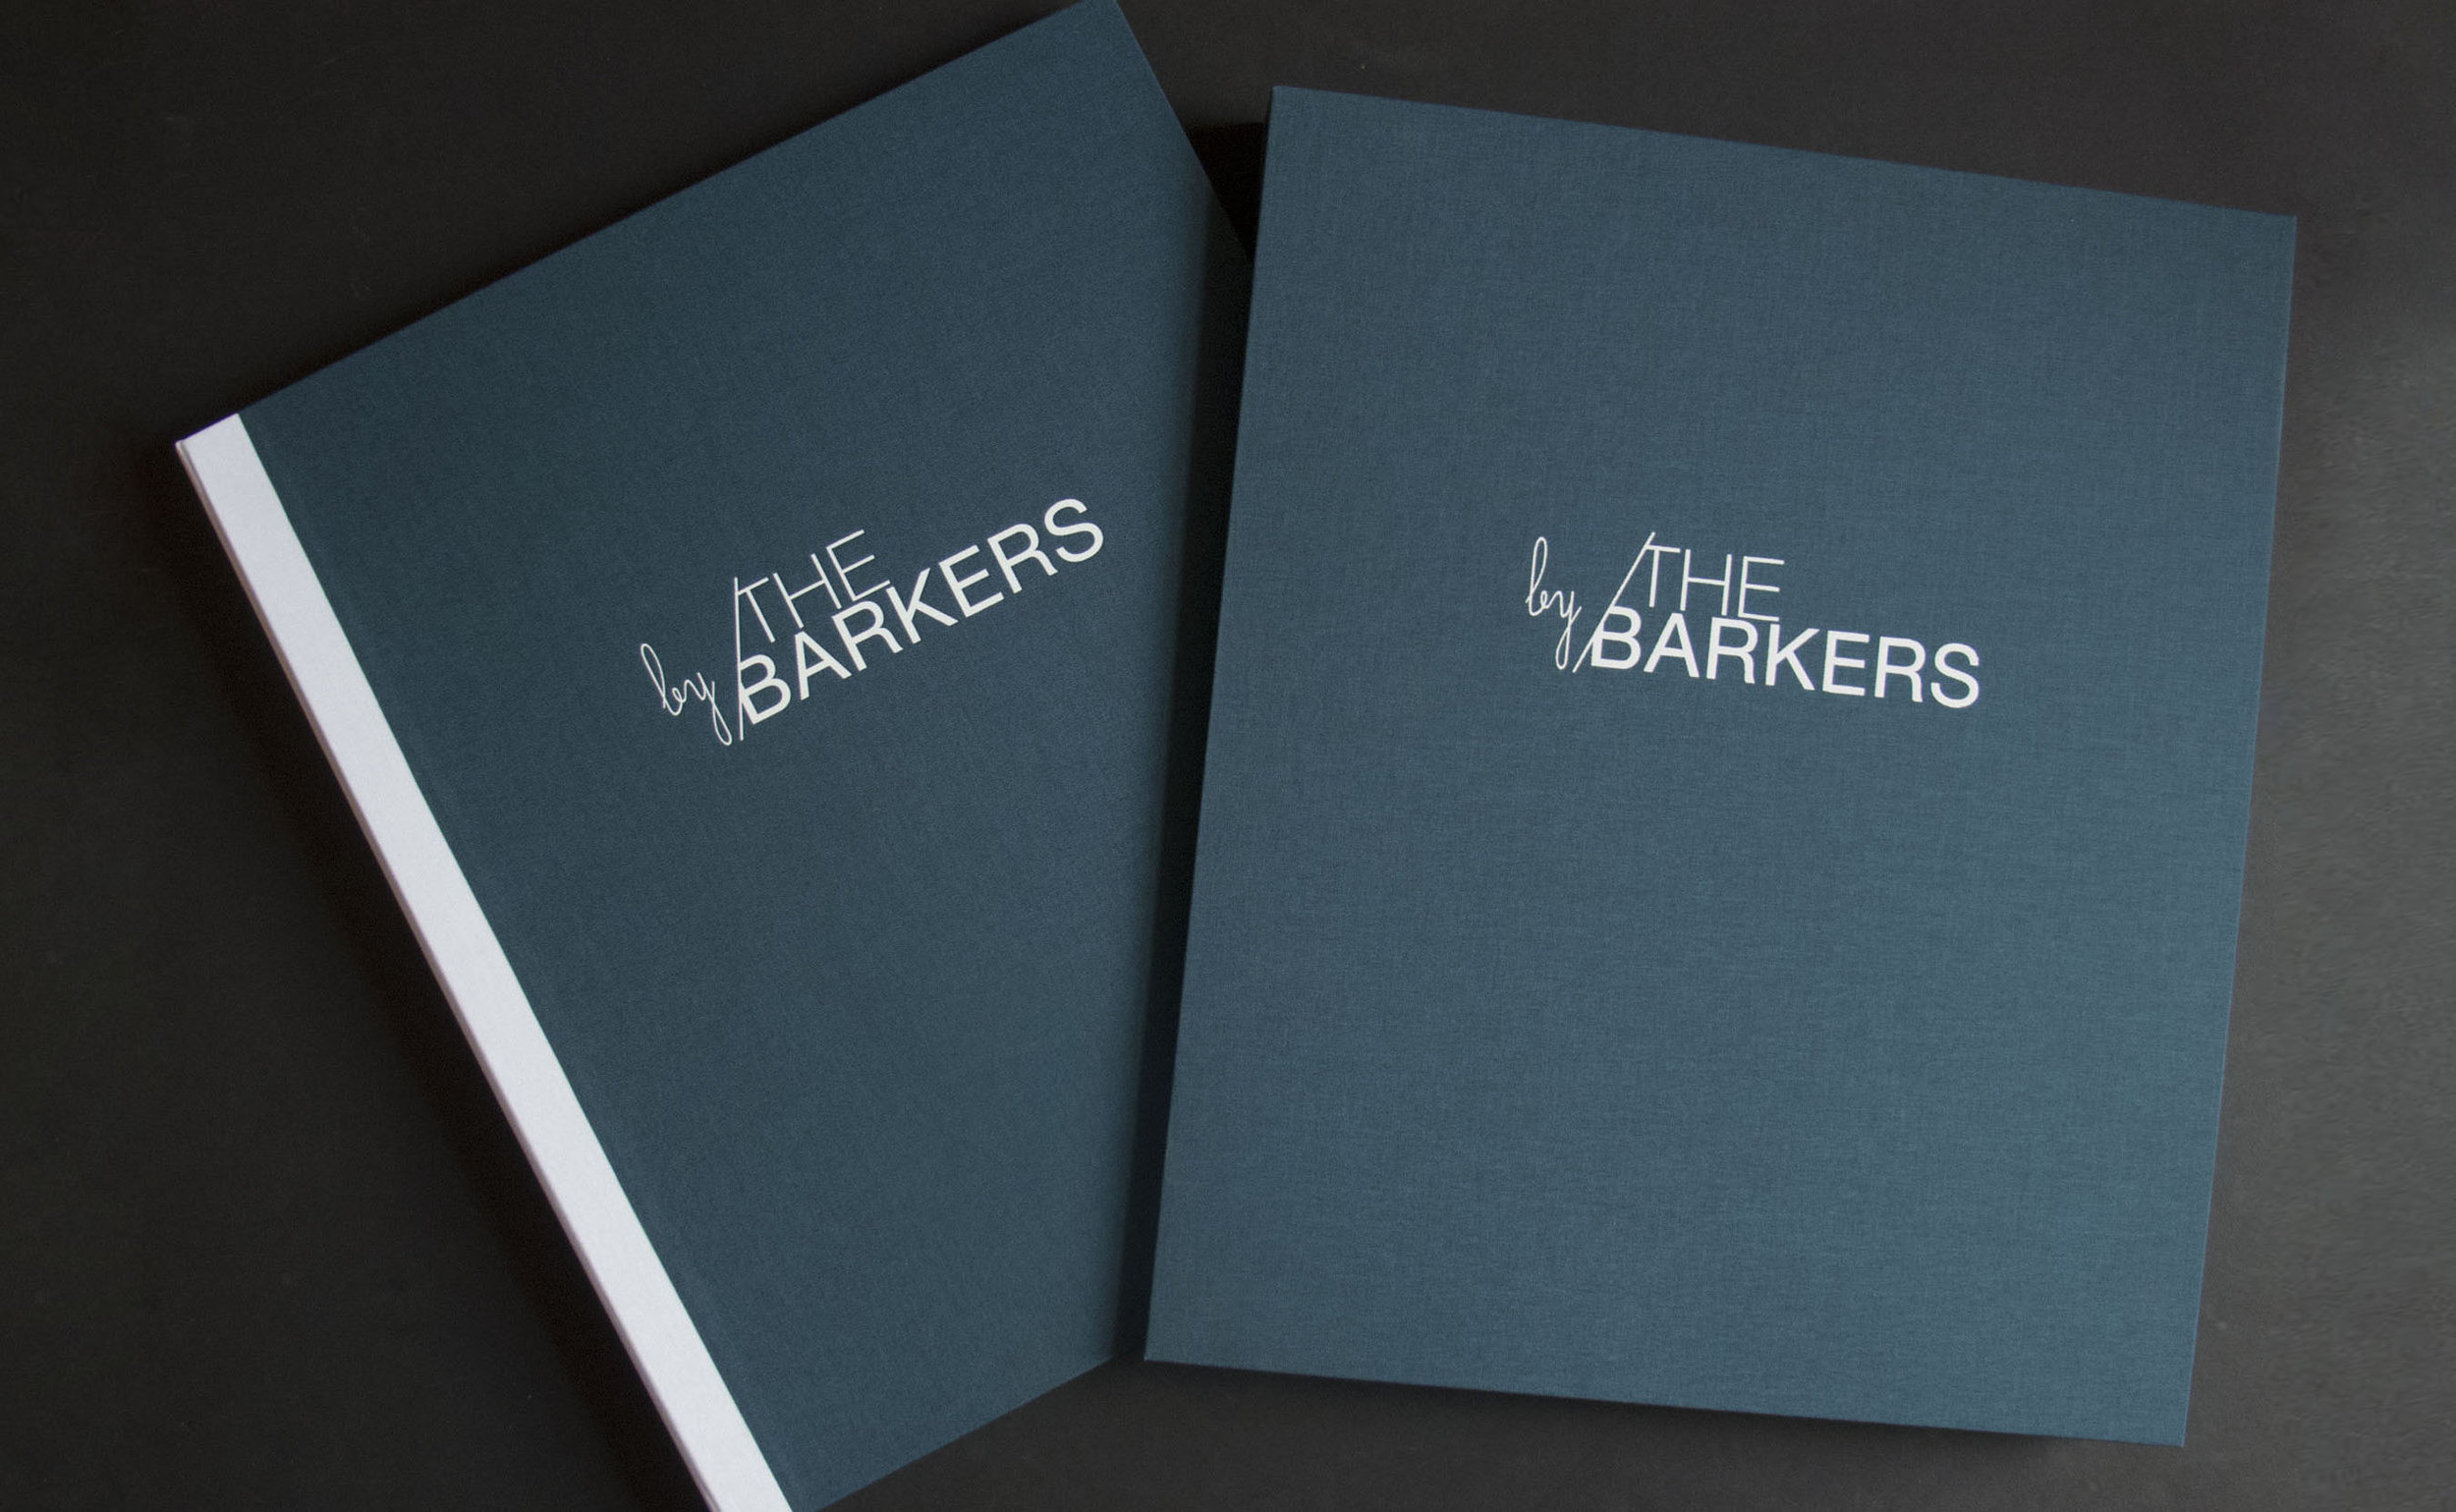 02_sneak+peak_the+barkers.jpg